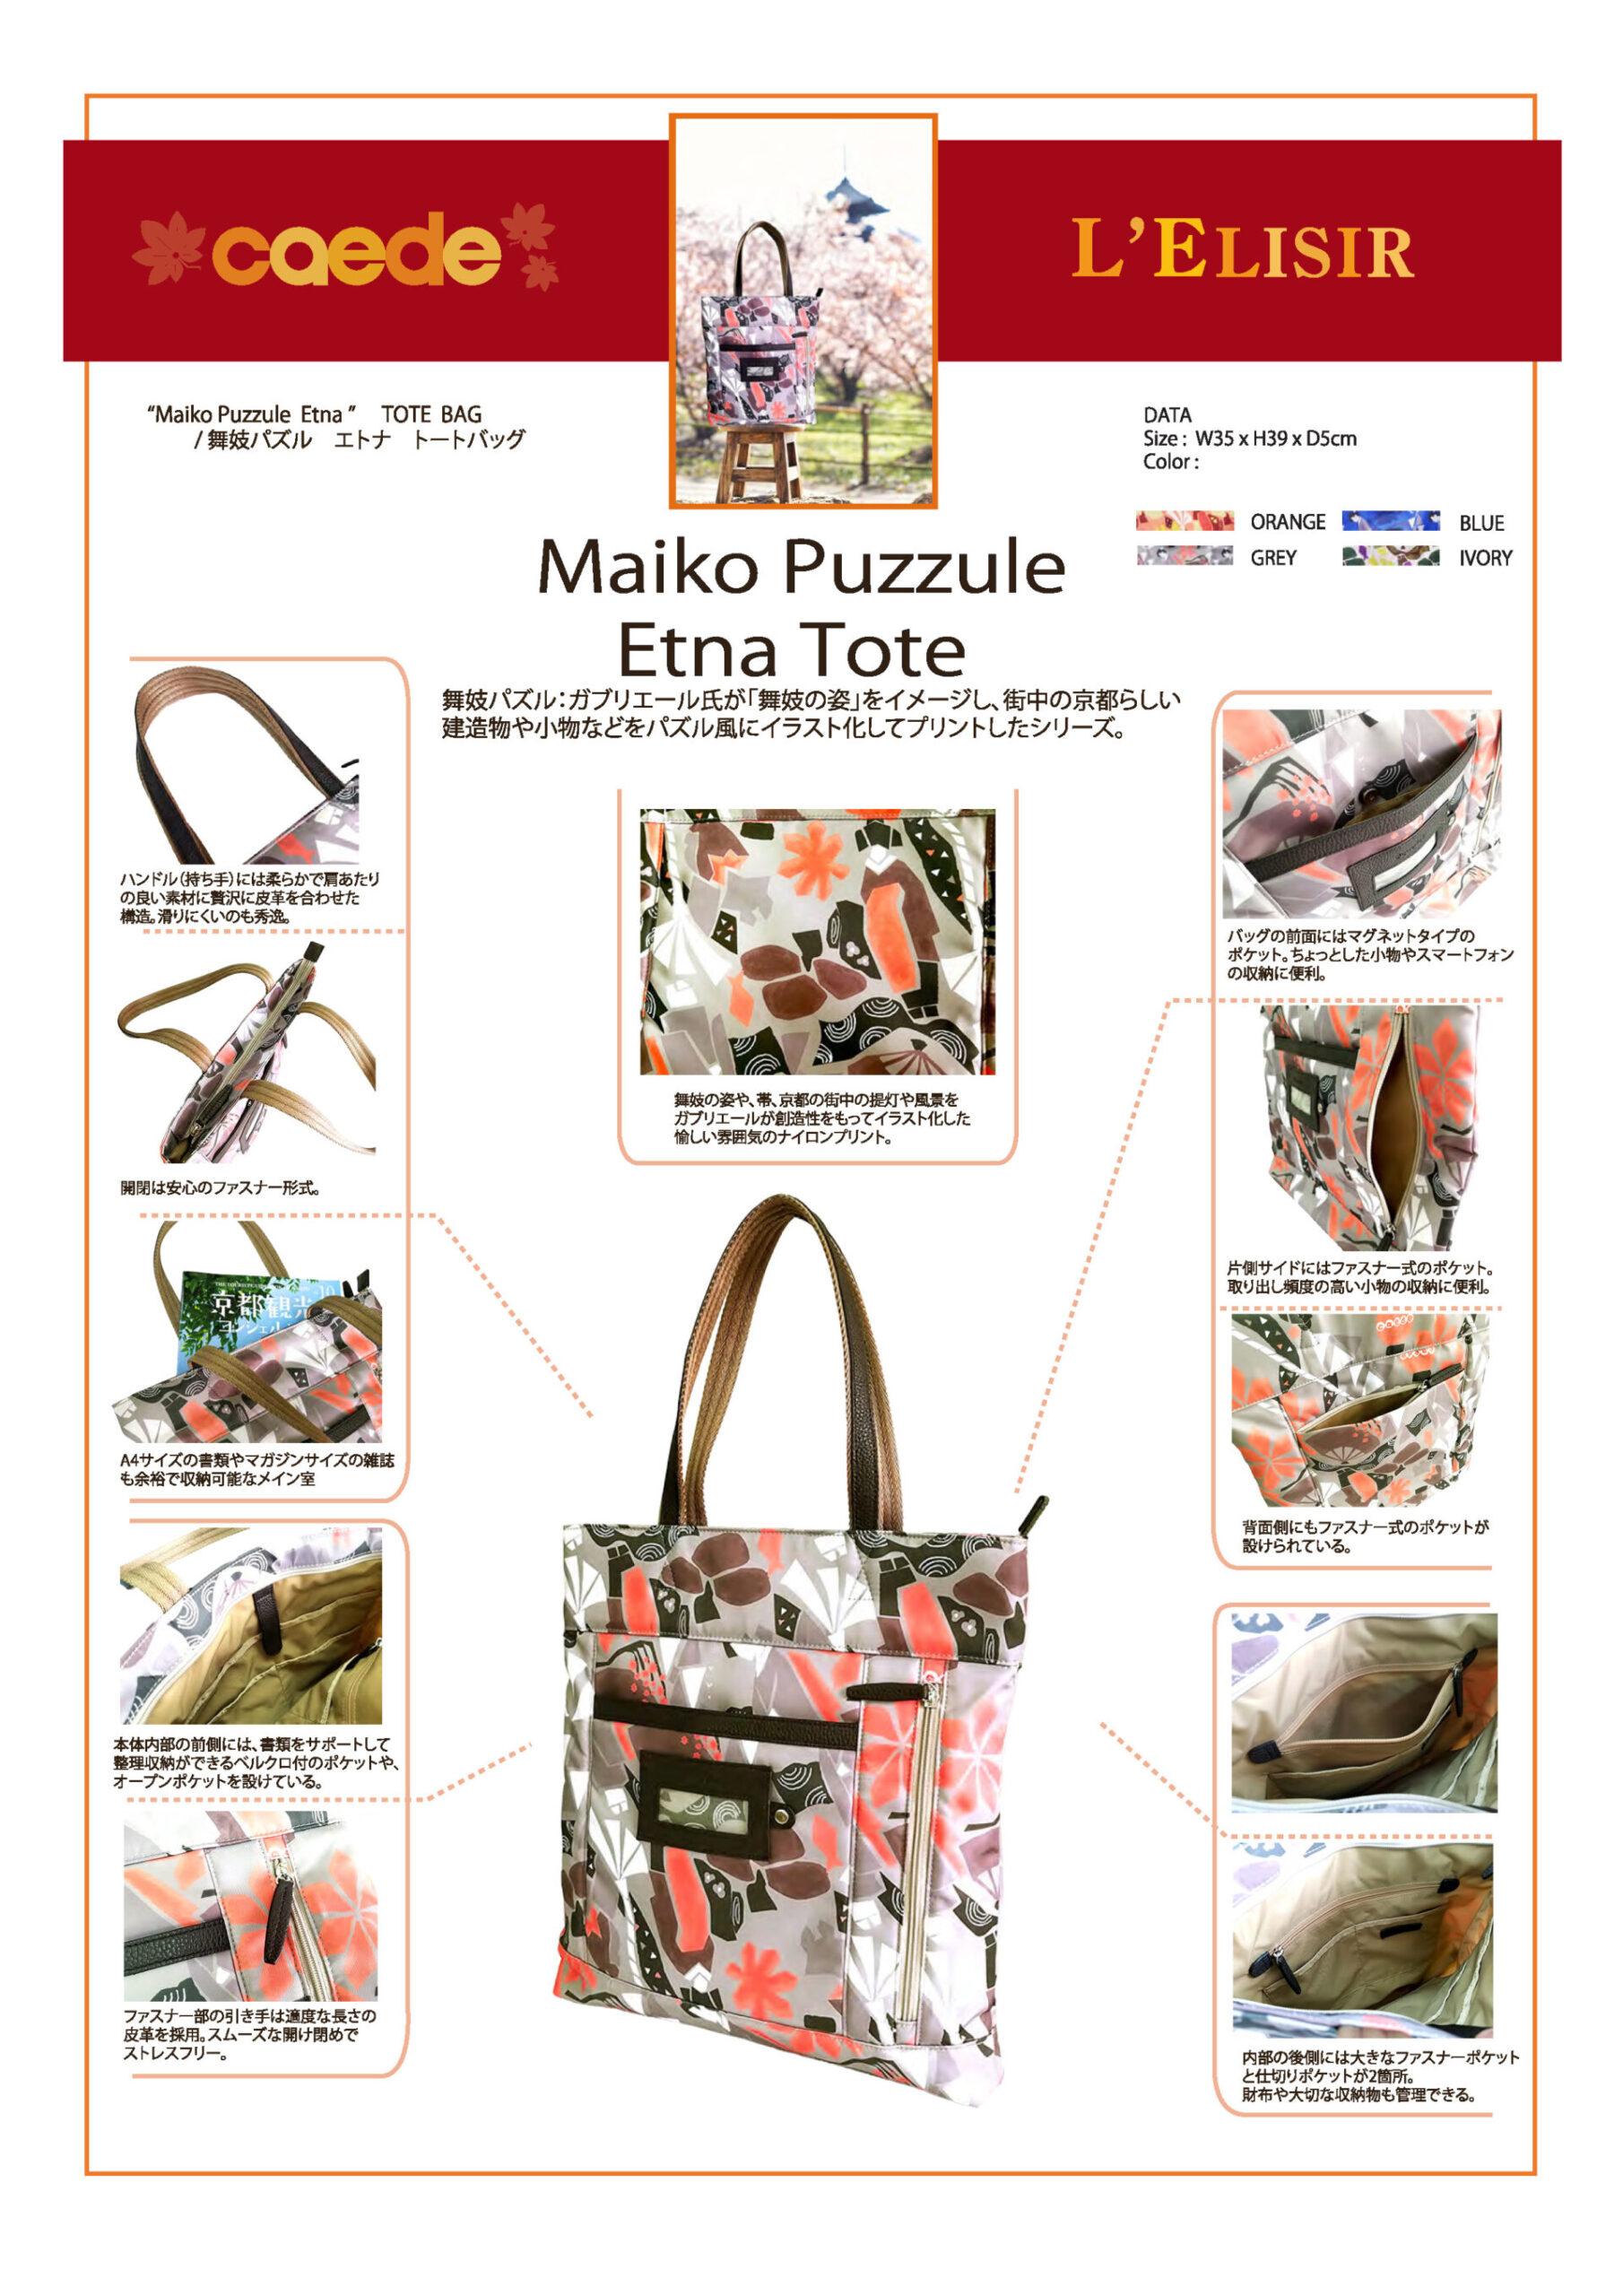 Maiko Puzzle Etna tote orange